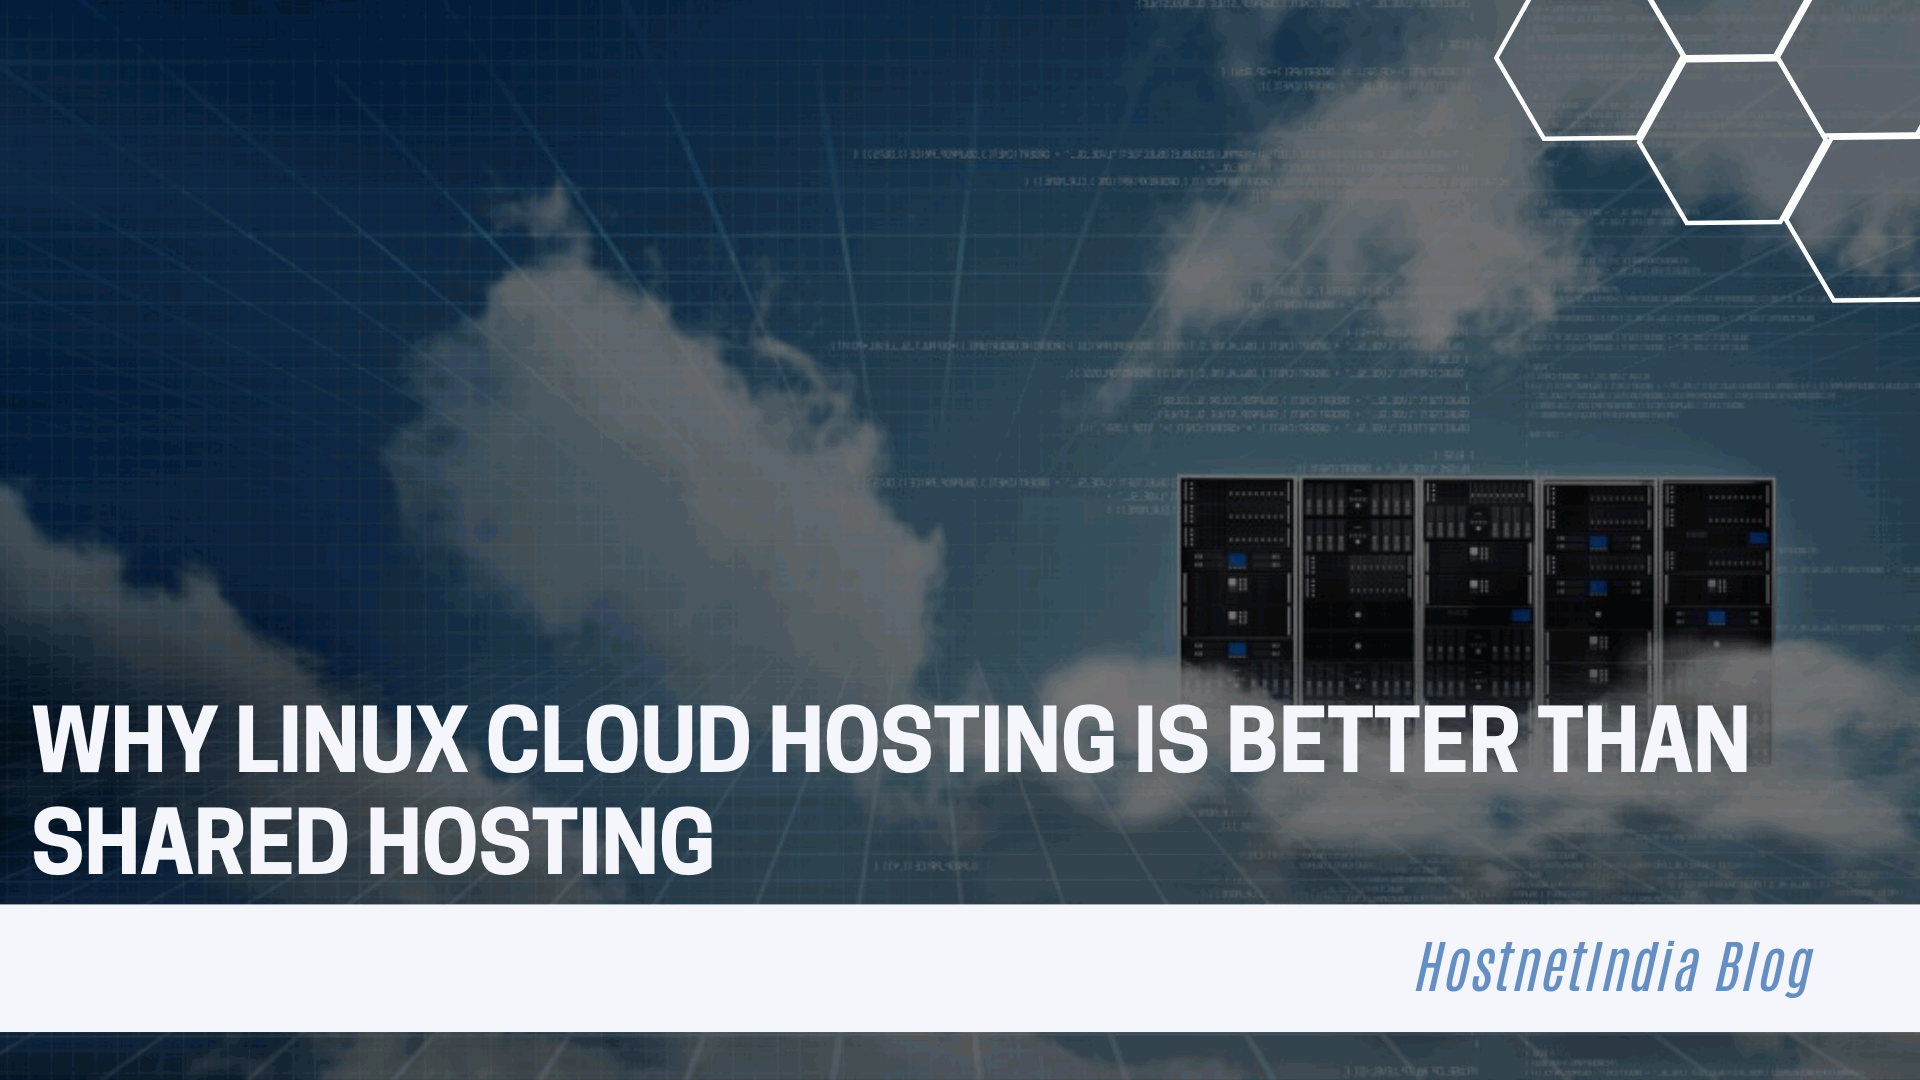 Why Linux Cloud Hosting is Better Than Shared Hosting